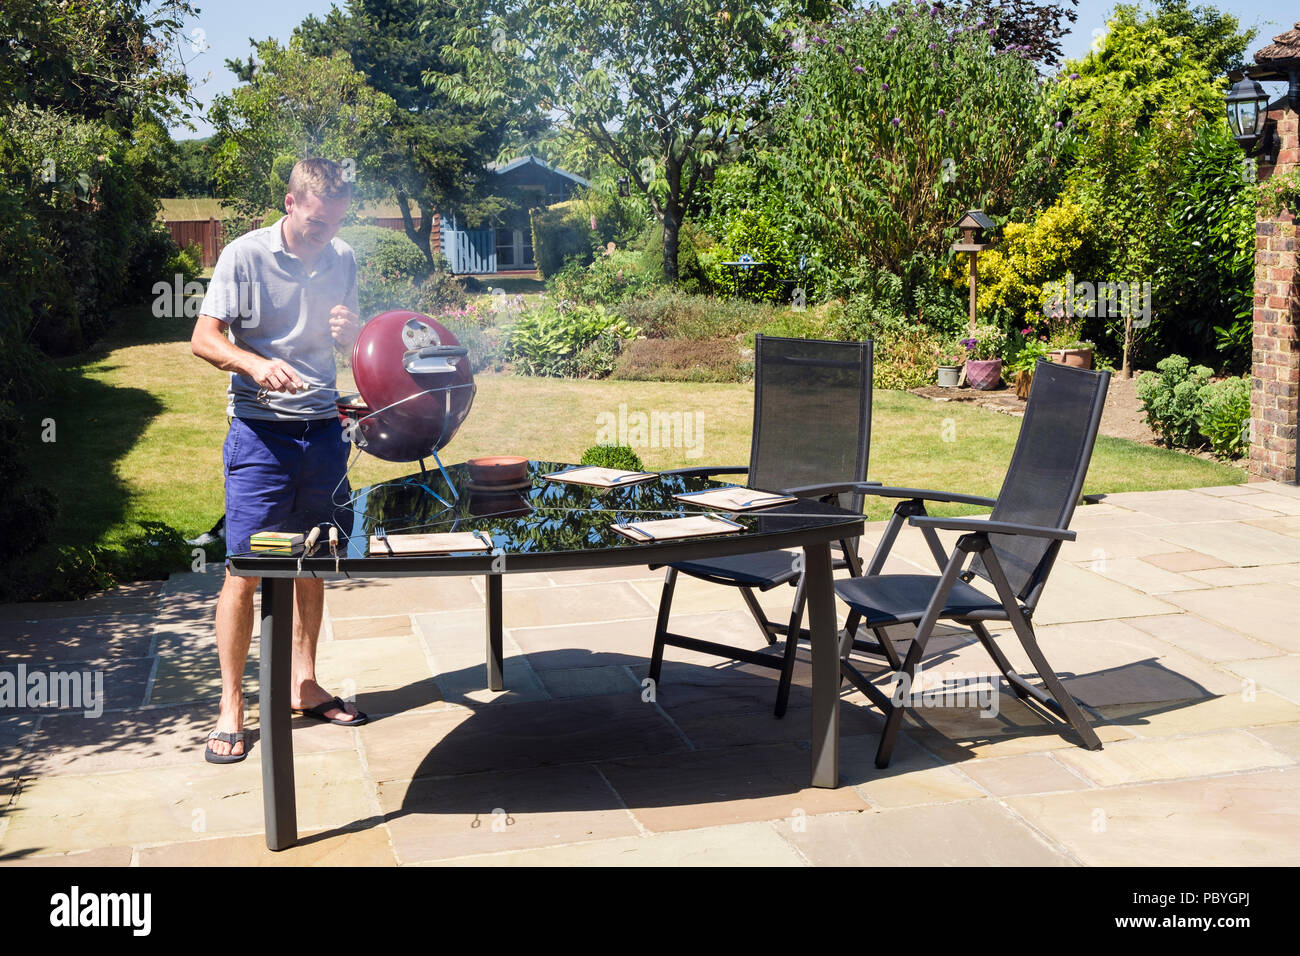 Young Millennial man cooks on a BBQ on a domestic back garden table on a patio in hot summer of 2018. England, UK, Britain Stock Photo